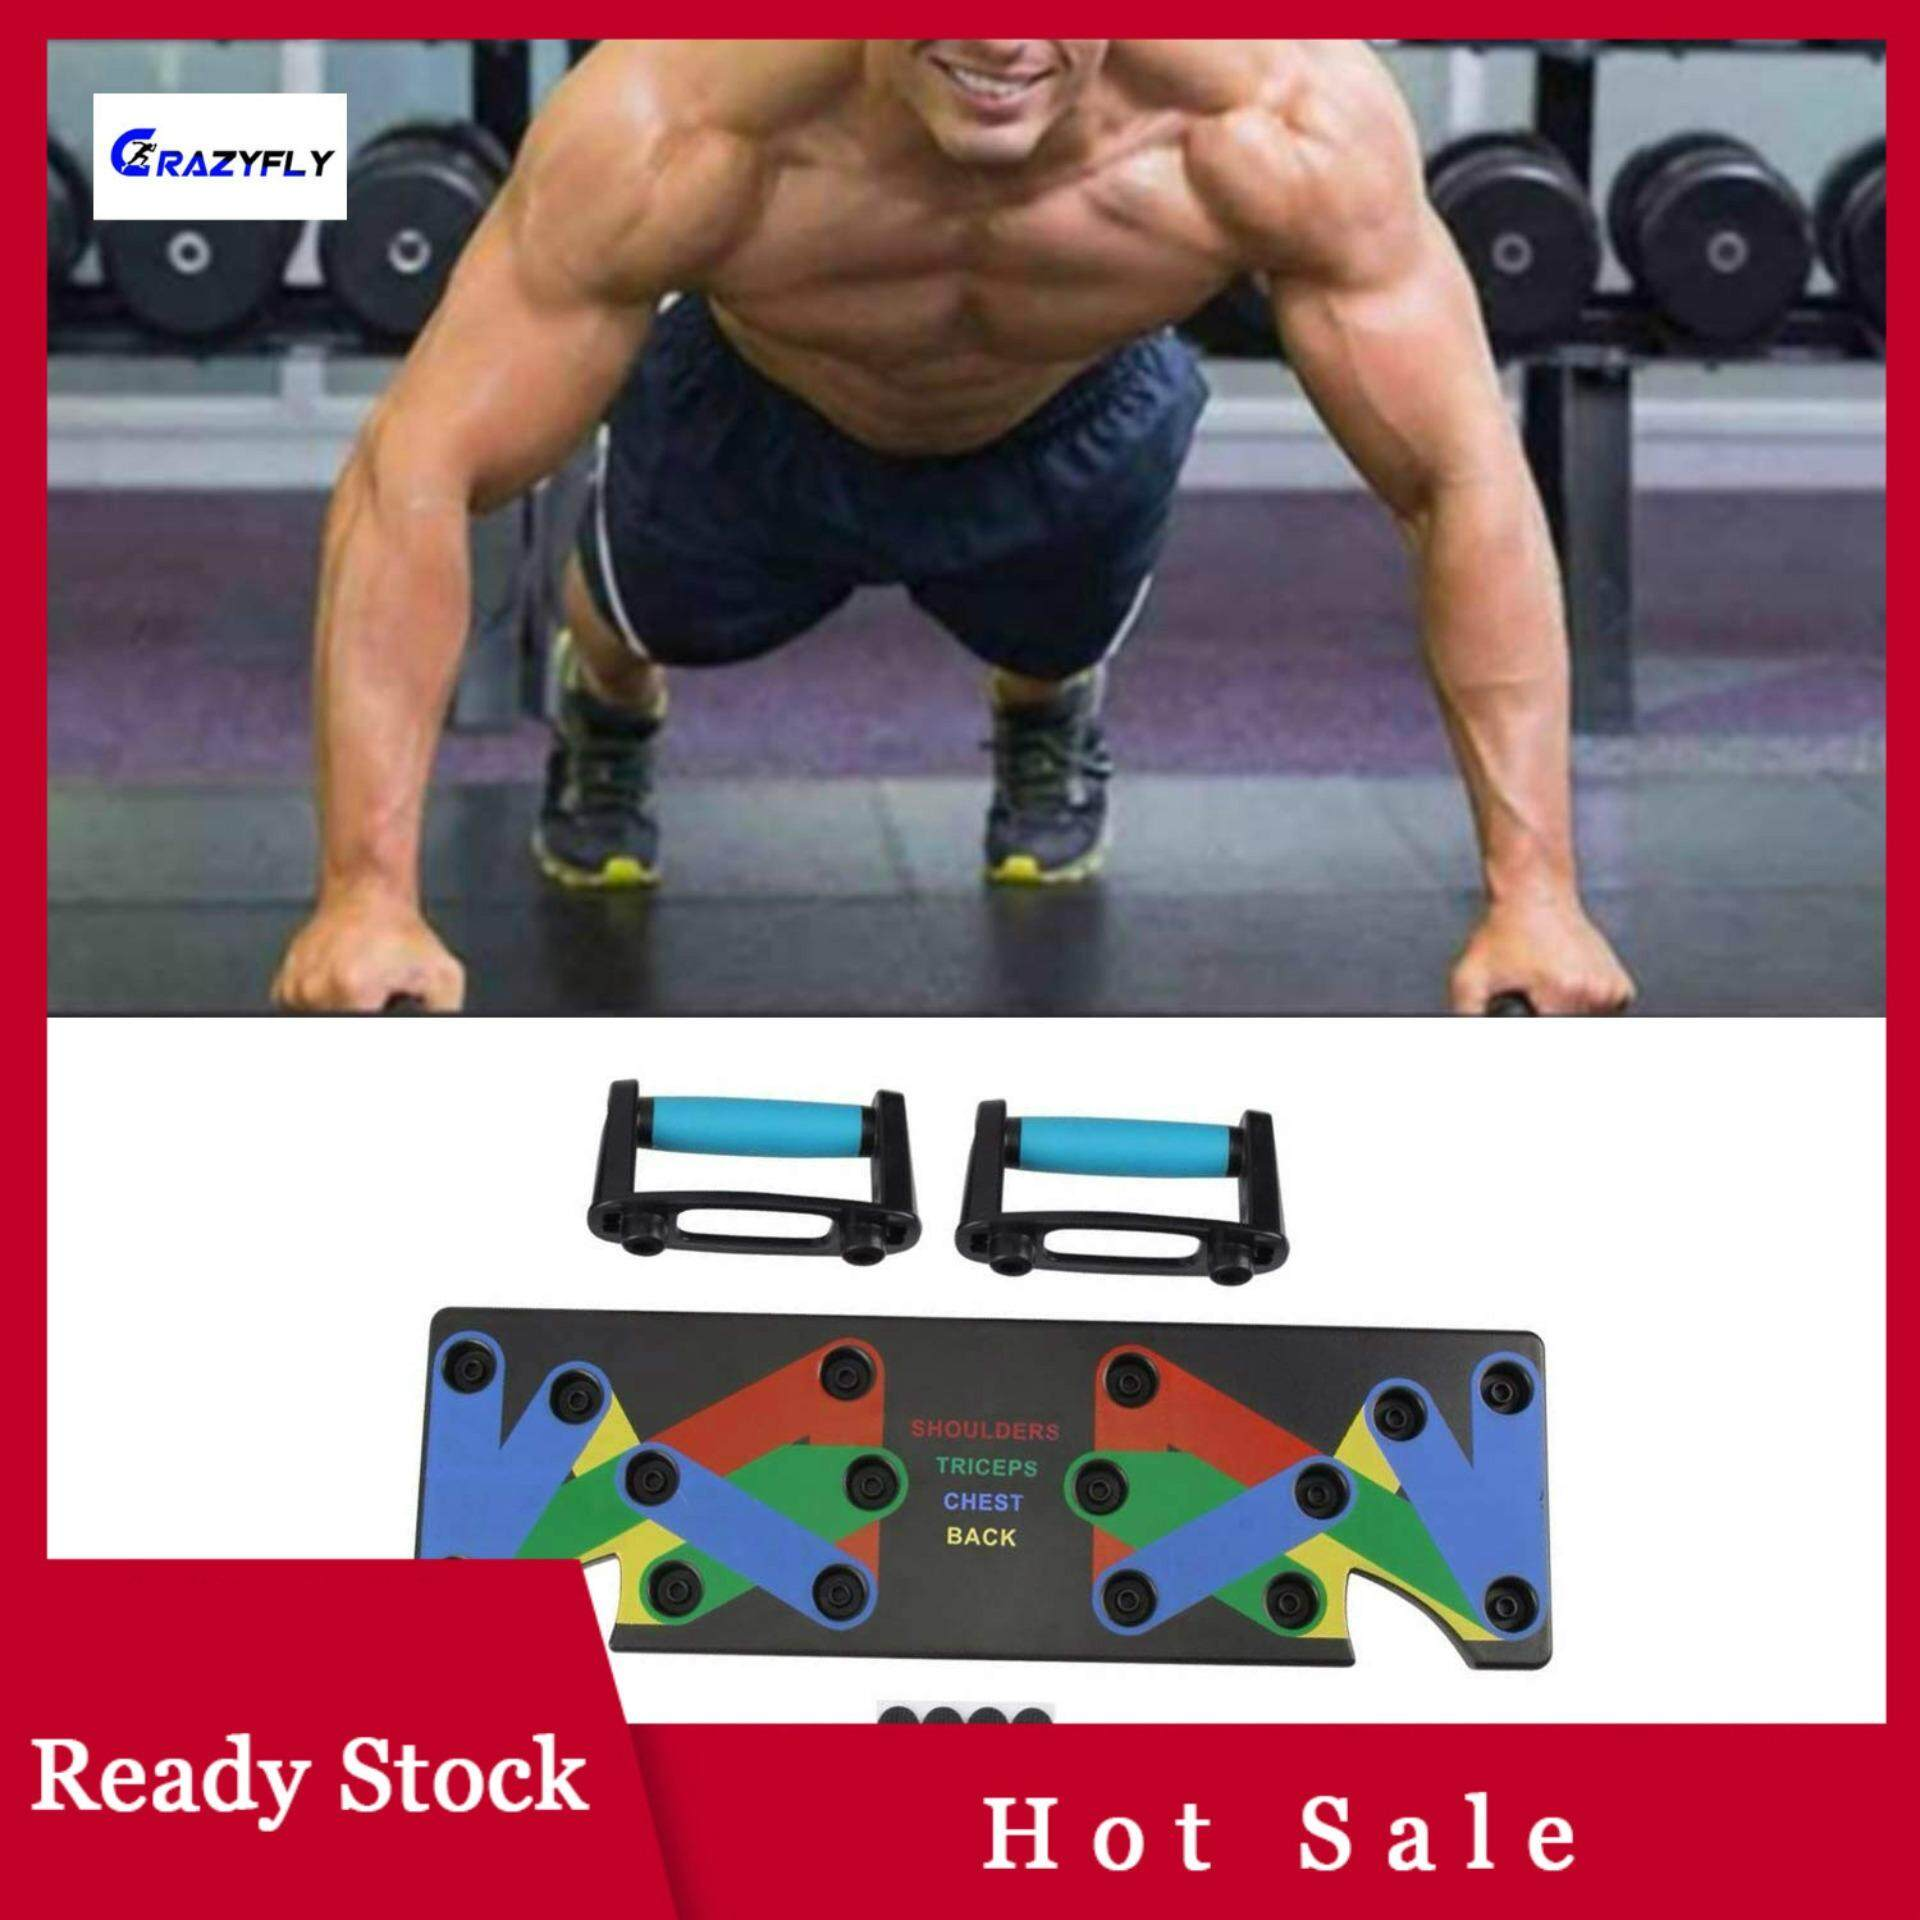 1164c69e30d06 Crazyfly The Ultra Push 9 in 1 System Push-up Bracket Board Portable for  Home